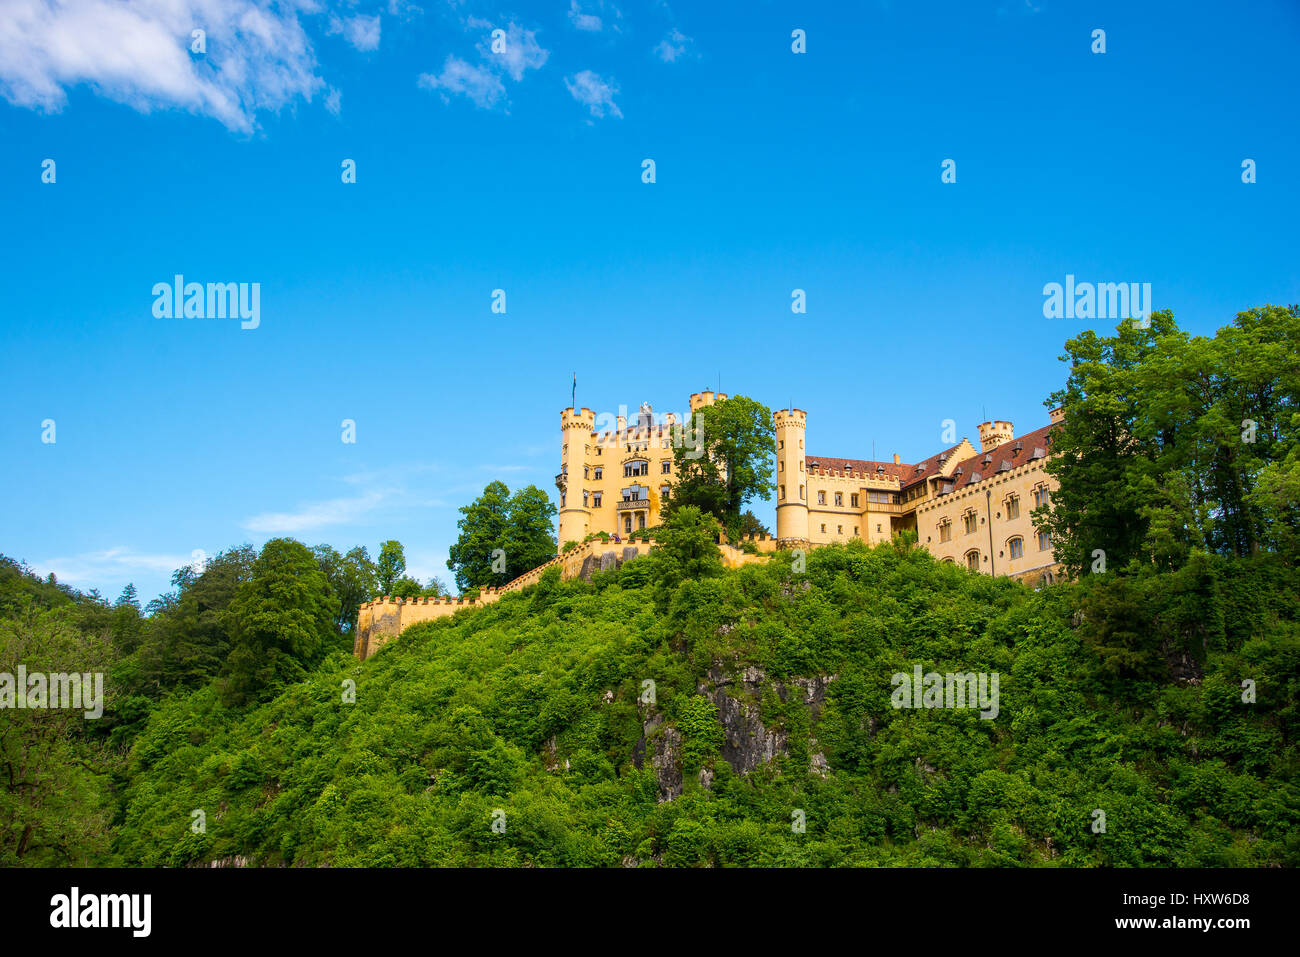 Hohenschwangau Castle or Schloss Hohenschwangau is a 19th-century palace in southern Germany. It was the childhood - Stock Image